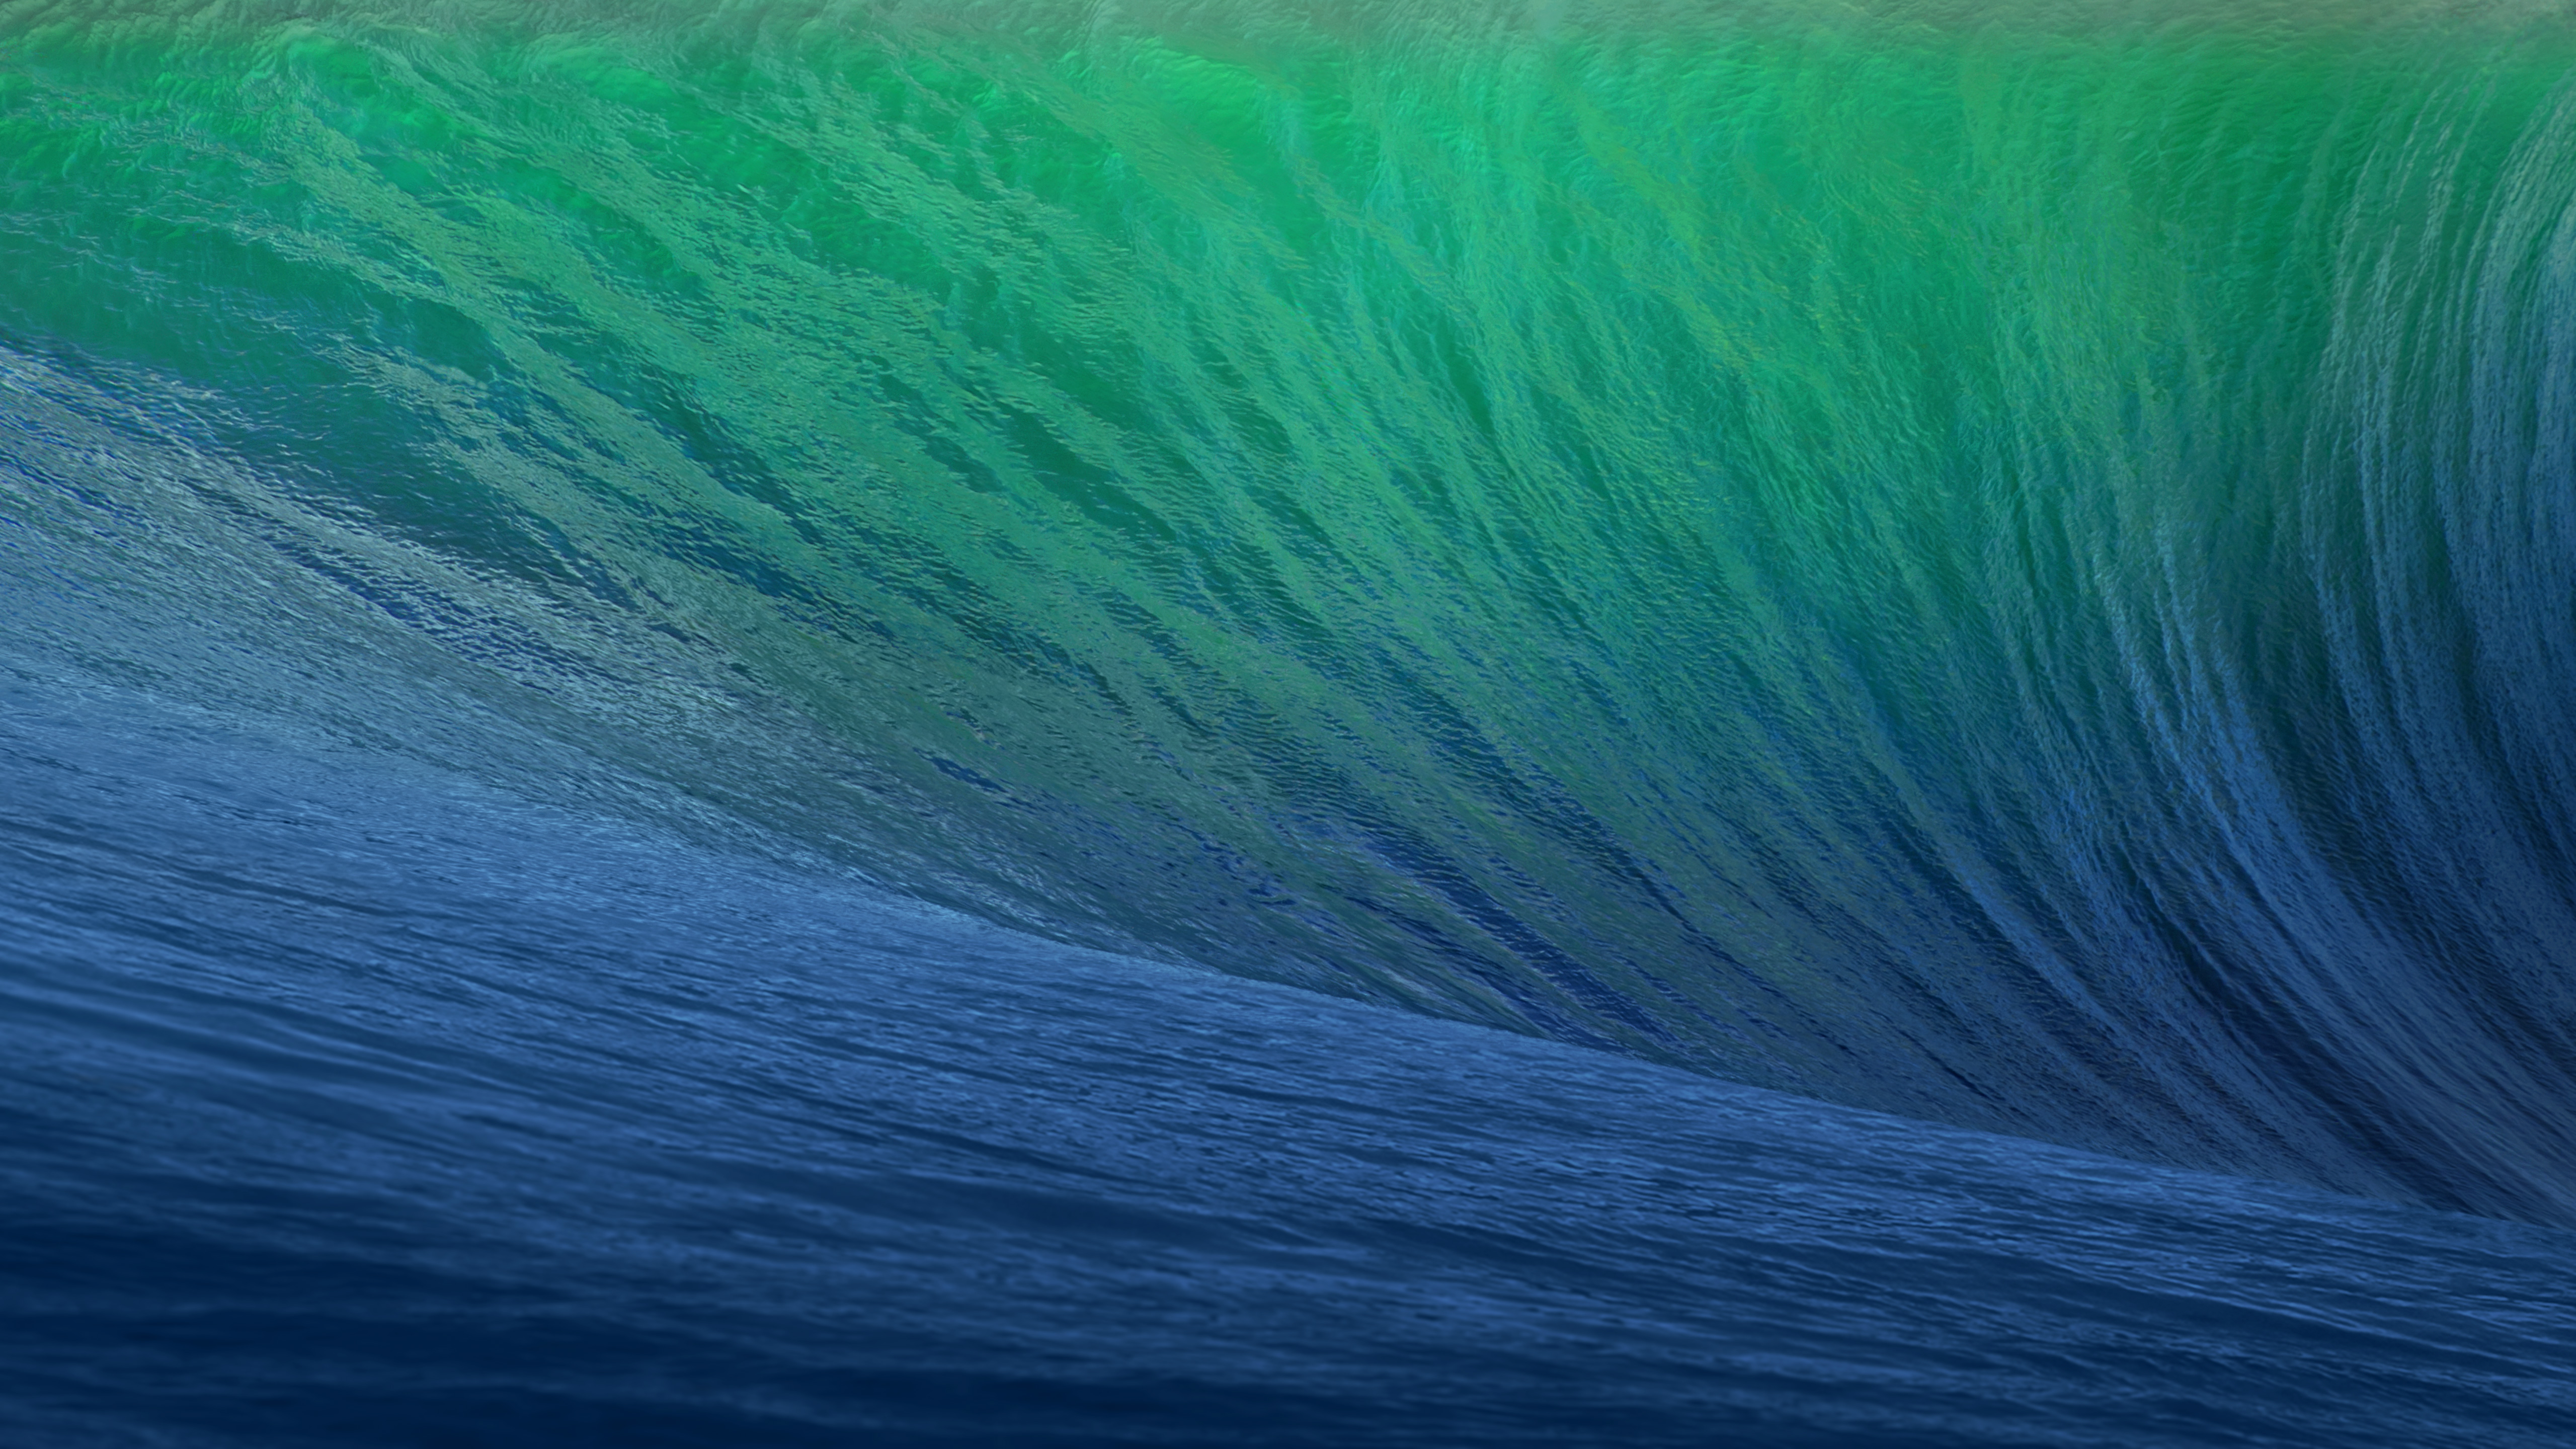 5K Apple Retina Displays Coming? New Wallpaper for OS X 10.9 ...